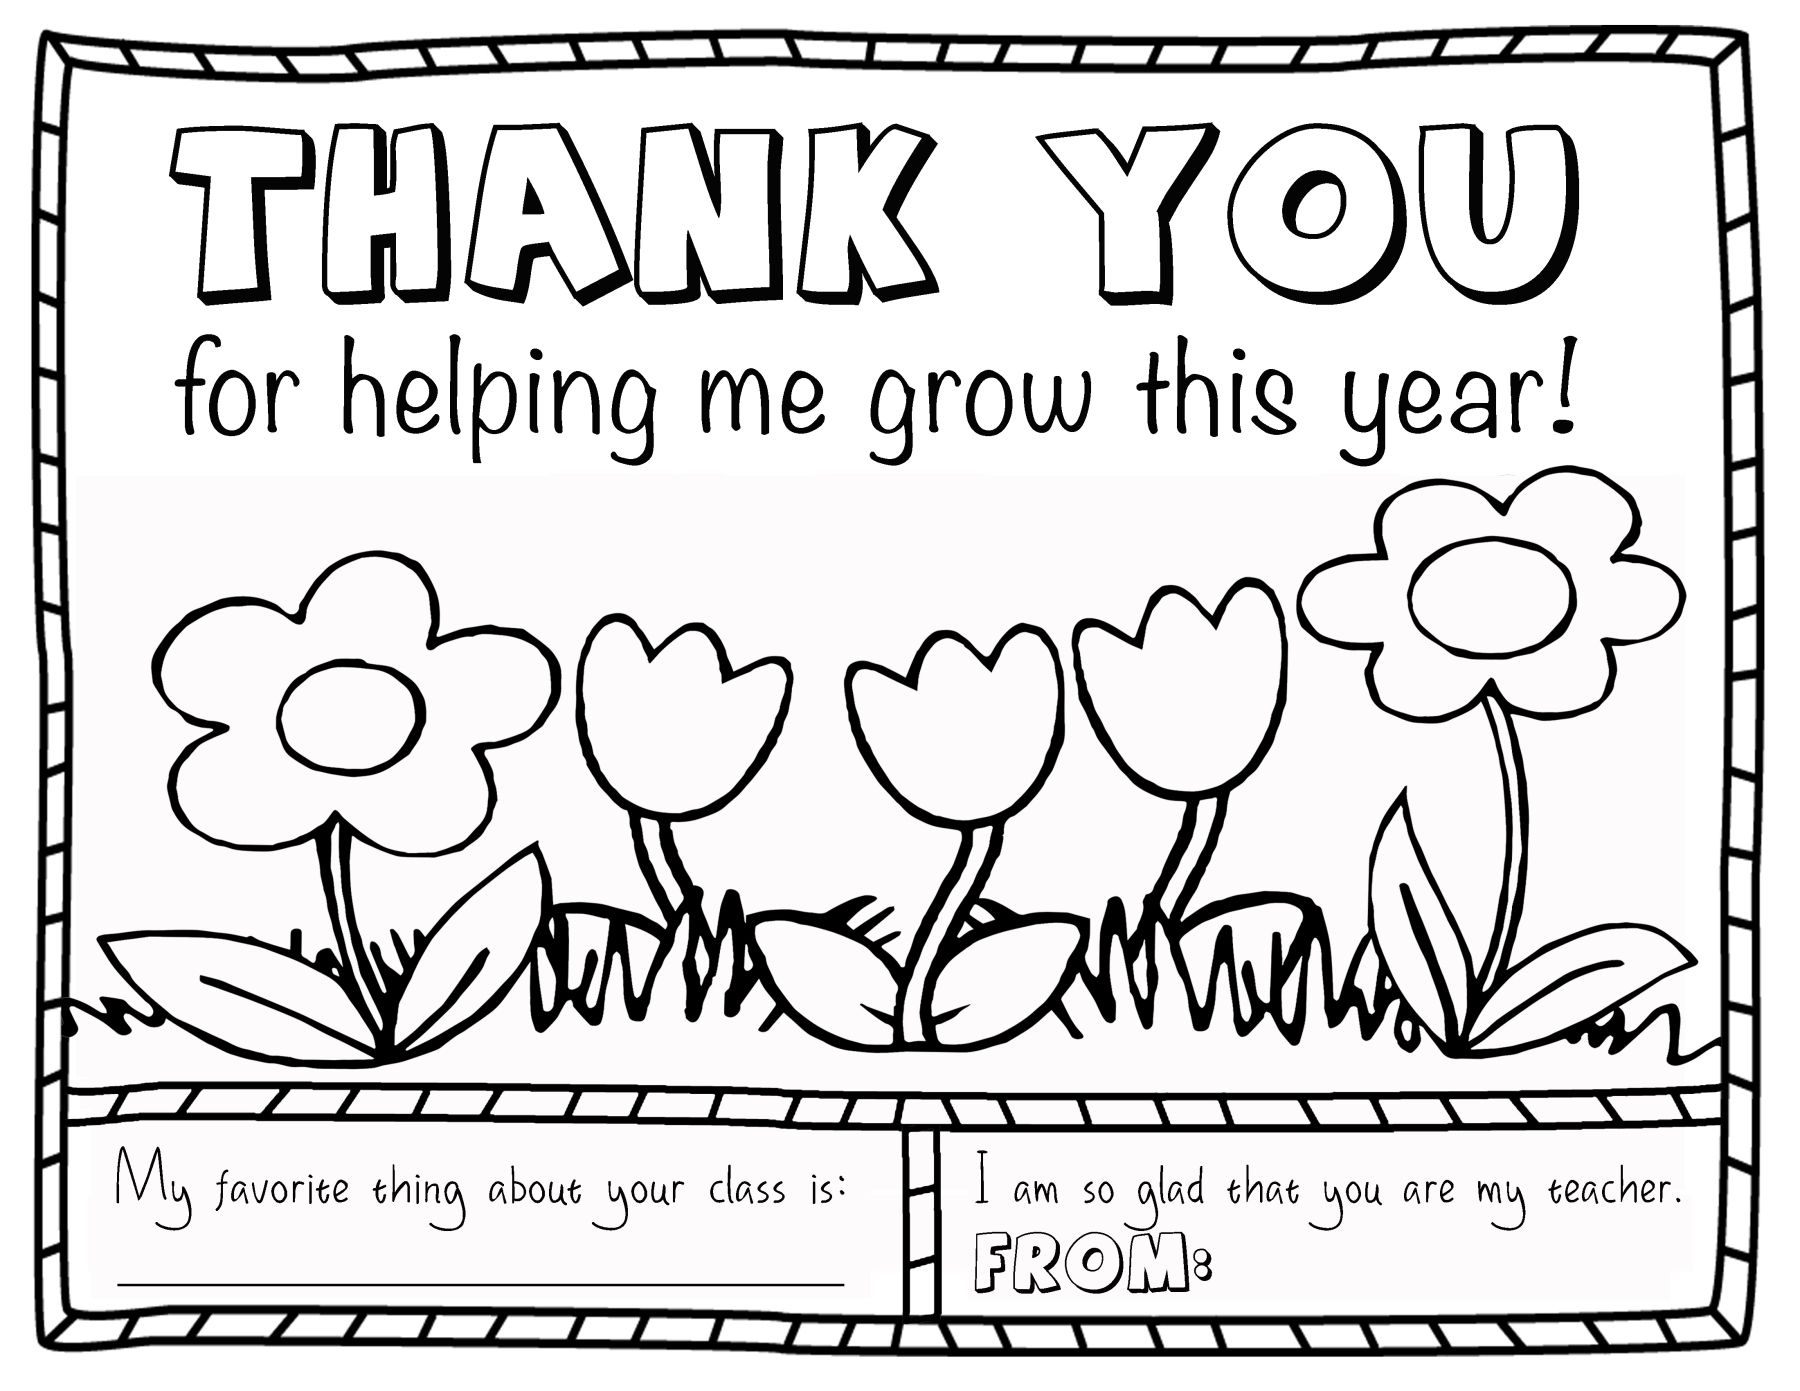 Teacher Appreciation Coloring Page Projects In Parenting Teacher Appreciation Printables Teacher Appreciation Cards Coloring Pages For Teenagers